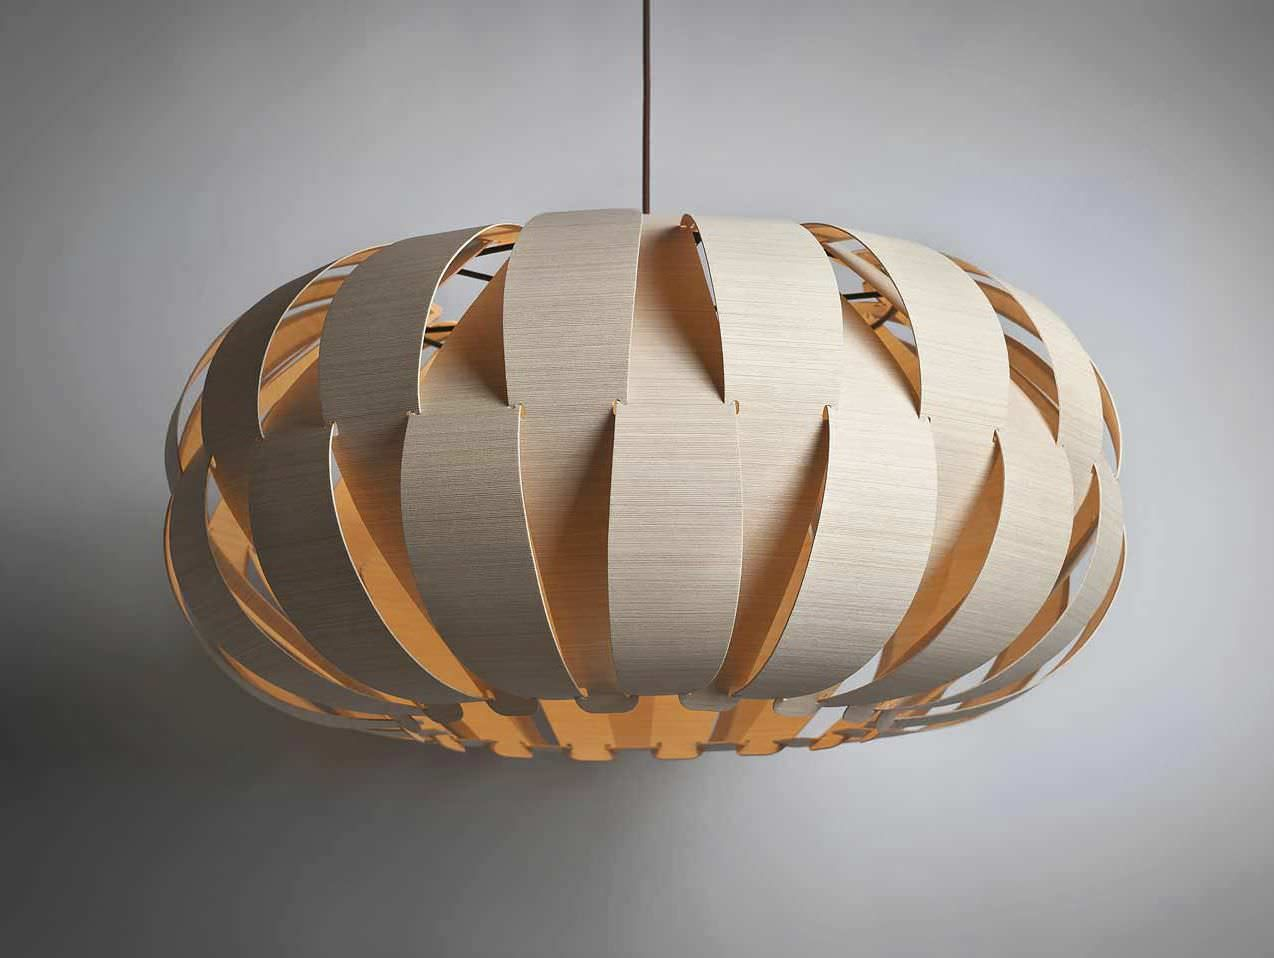 Charming Pendal Lamp From The LFI Innovation Awards Emilia 75 Is A Unique And  Aesthetic Pendant Lamp Made Of A Flexible Wood Veneer That Have Been  Developed By ... Good Ideas